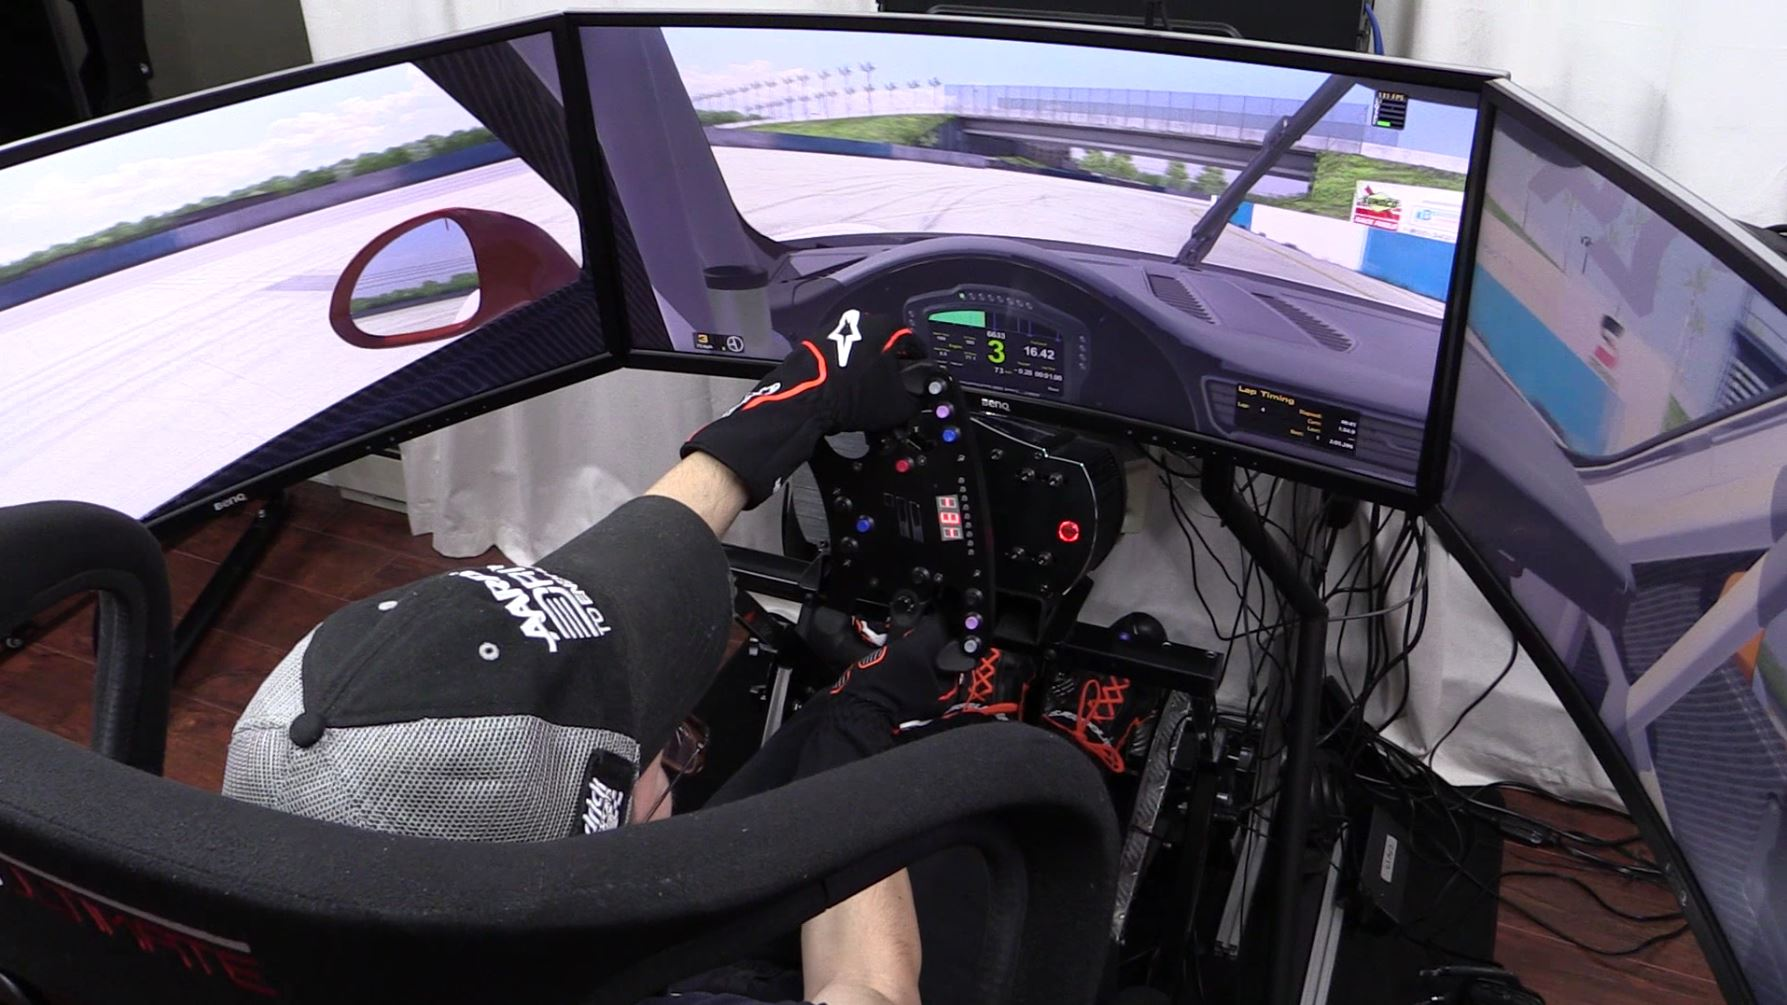 fanatec-clubsport-wheel-base-v2-iracing-sebring-porsche-911-next-level-motion-platform-v3